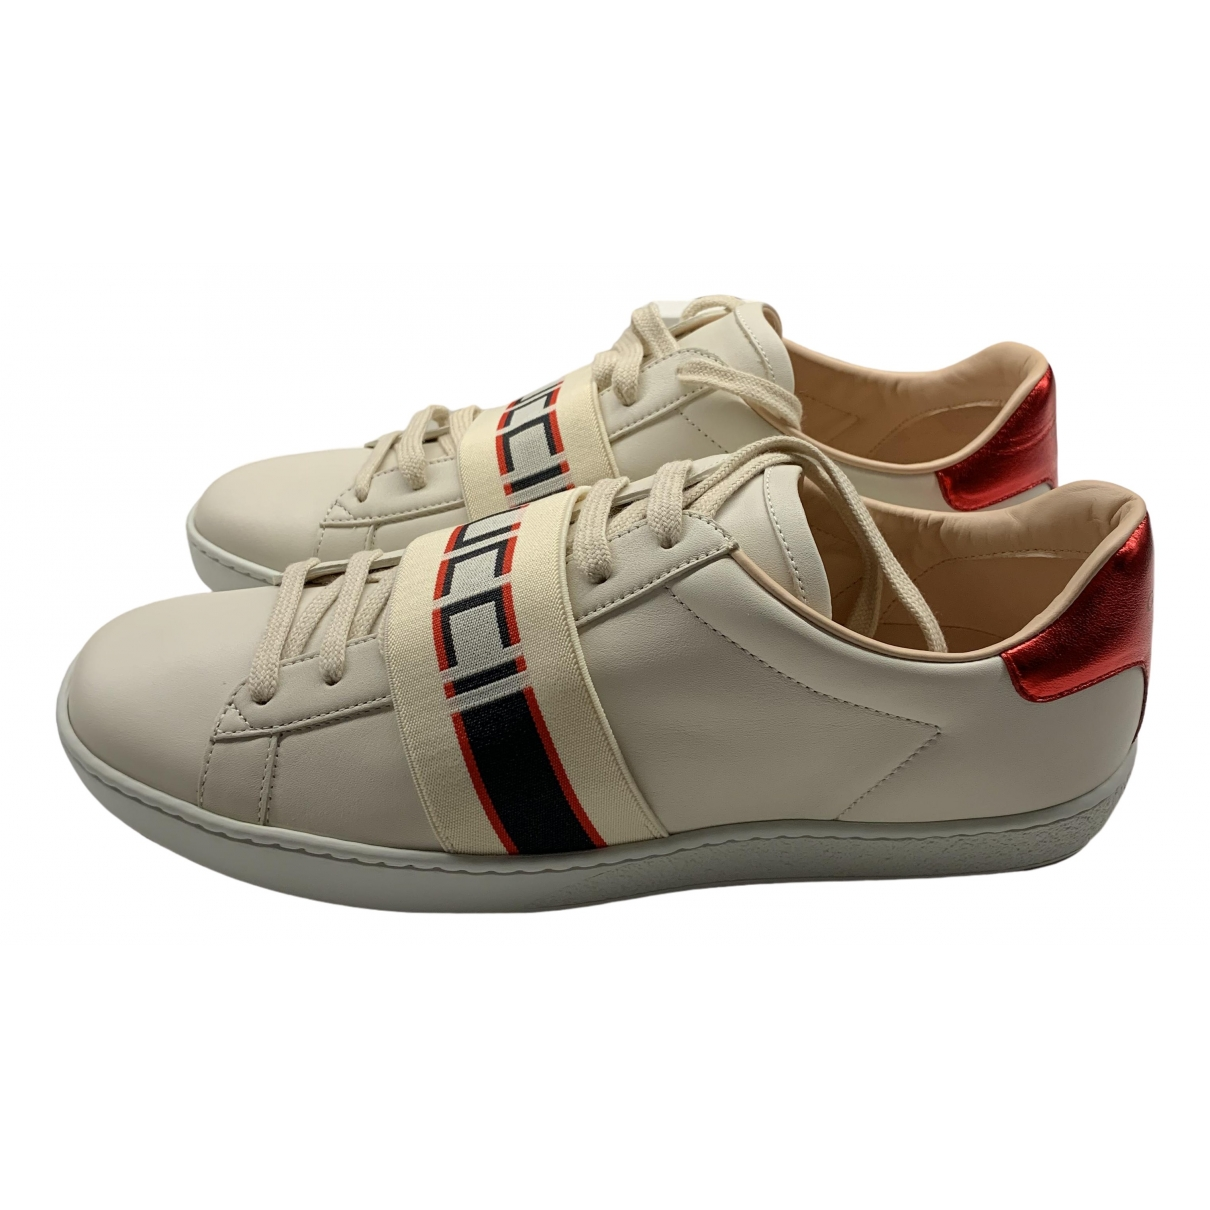 Gucci \N Beige Leather Trainers for Men 41EU